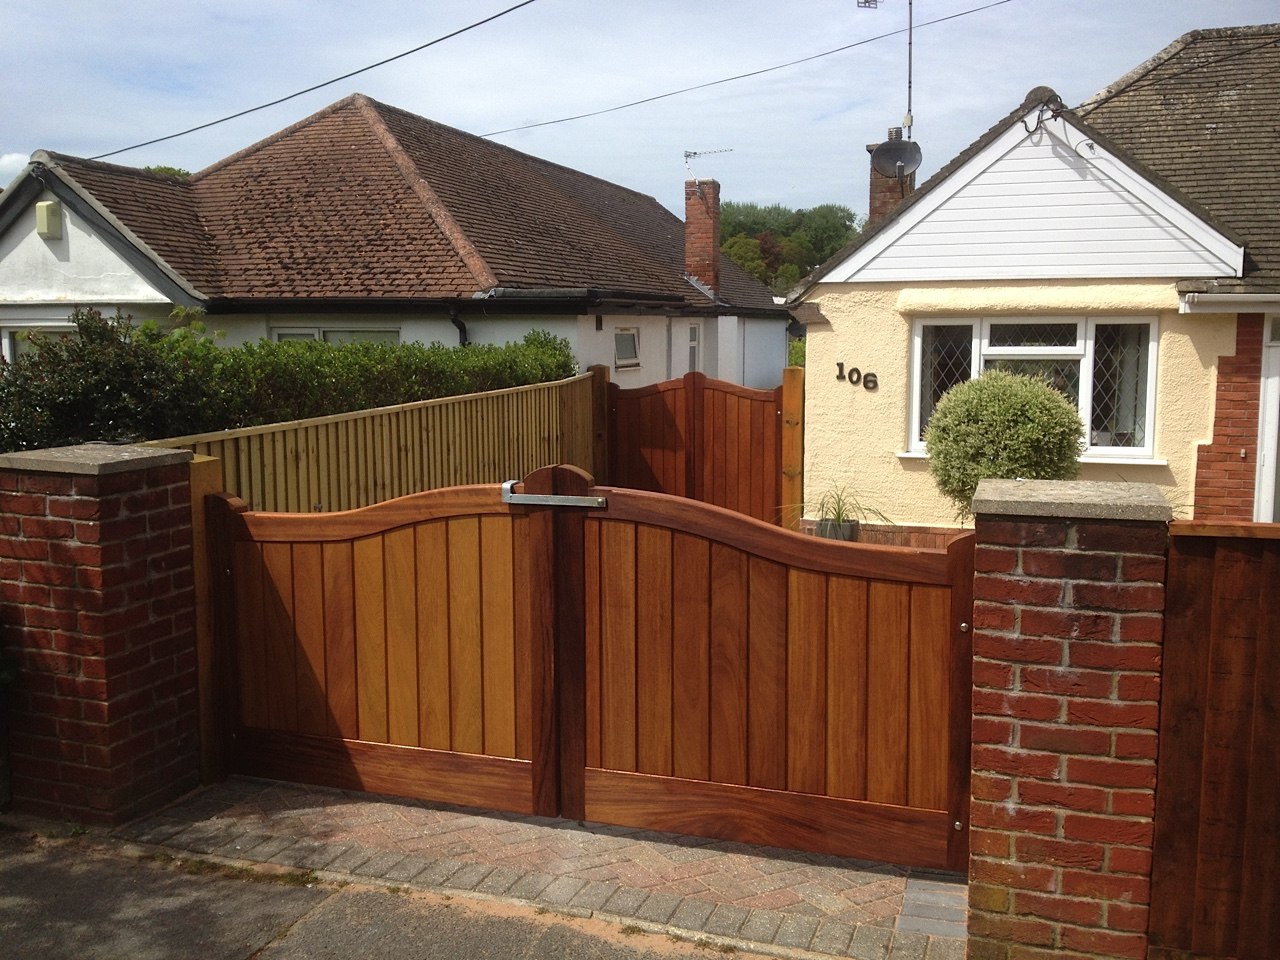 Showing Chelsea gates in Iroko Hardwood. As you can see these can be made to accommodate any height to suit.  In this picture the front gates are 3ft, the gates to the rear of the picture are 6ft.